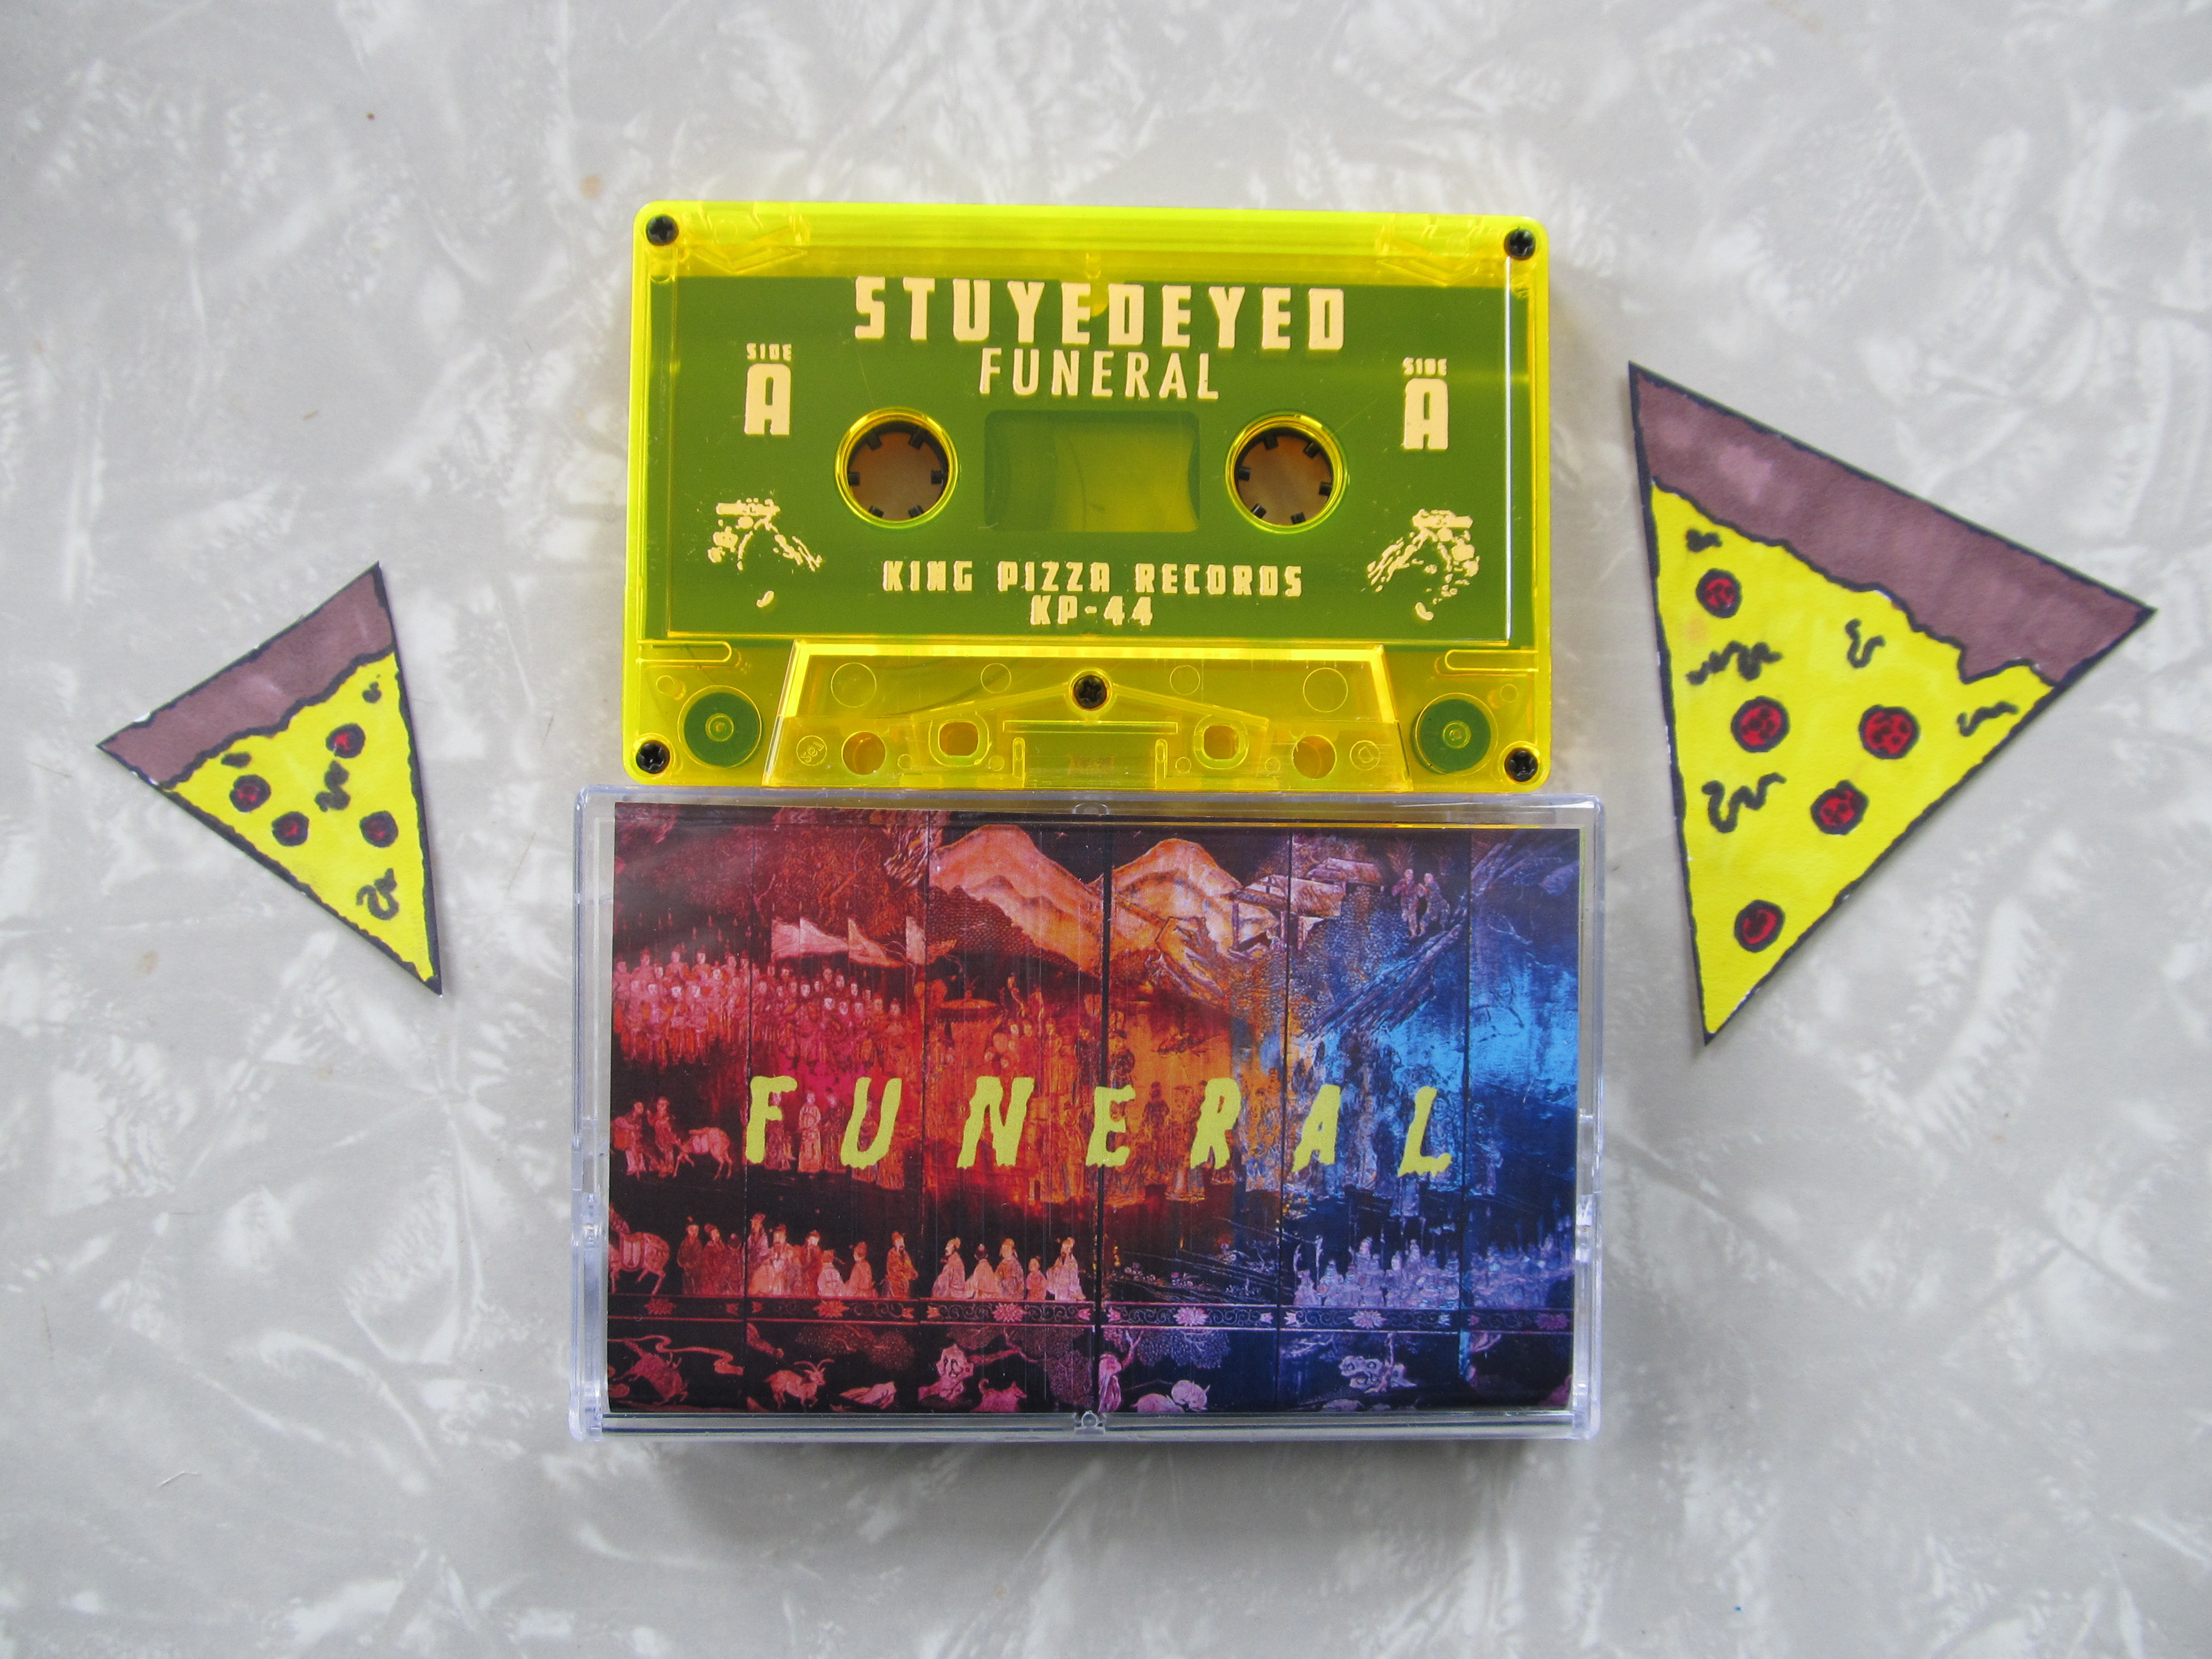 Stuyedeyed Funeral Cassette 183 King Pizza Records